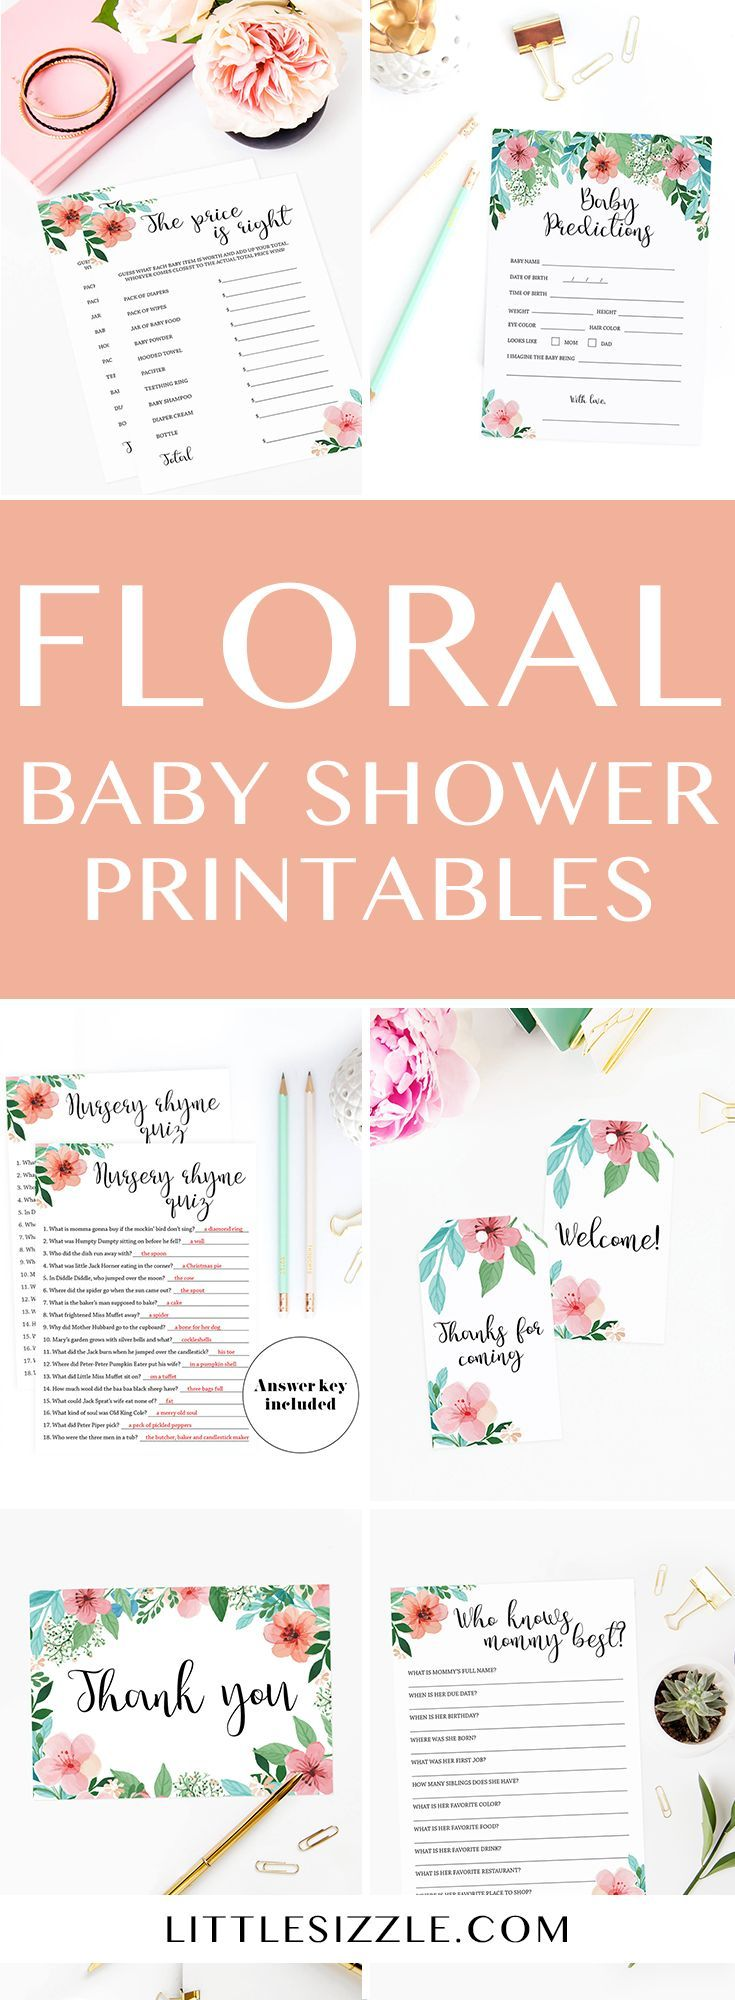 Floral themed baby shower ideas for baby girl shower by LittleSizzle. Printable baby shower games for gender neutral baby shower and floral baby shower invitation templates for girl baby shower. Beautiful floral pink and green printables for your baby shower. Instantly download and print your own fun and easy baby shower games for large groups. Baby word scramble, nursery rhyme quiz, babybingo #babyshowergames #printables #babyshowerideas4u #babyshowerideas #babyshowerthemes #floral #pink #green